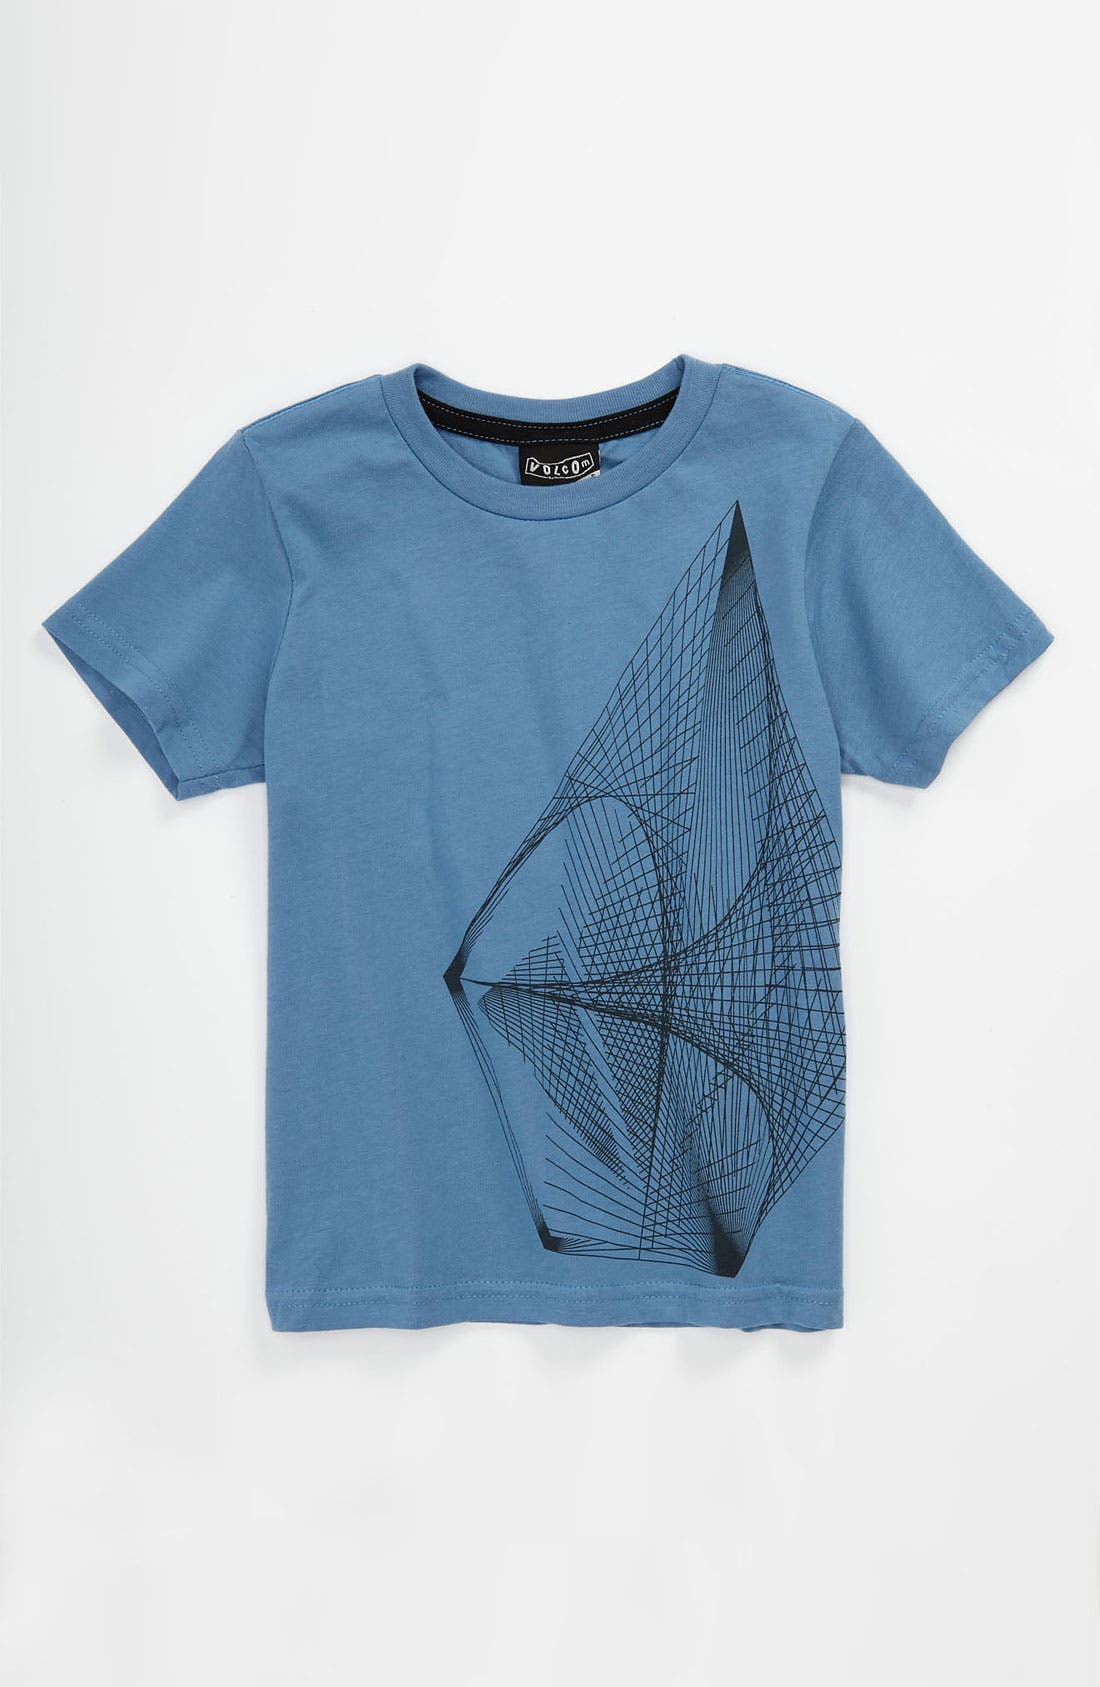 Alternate Image 1 Selected - Volcom 'Projected' T-Shirt (Big Boys)